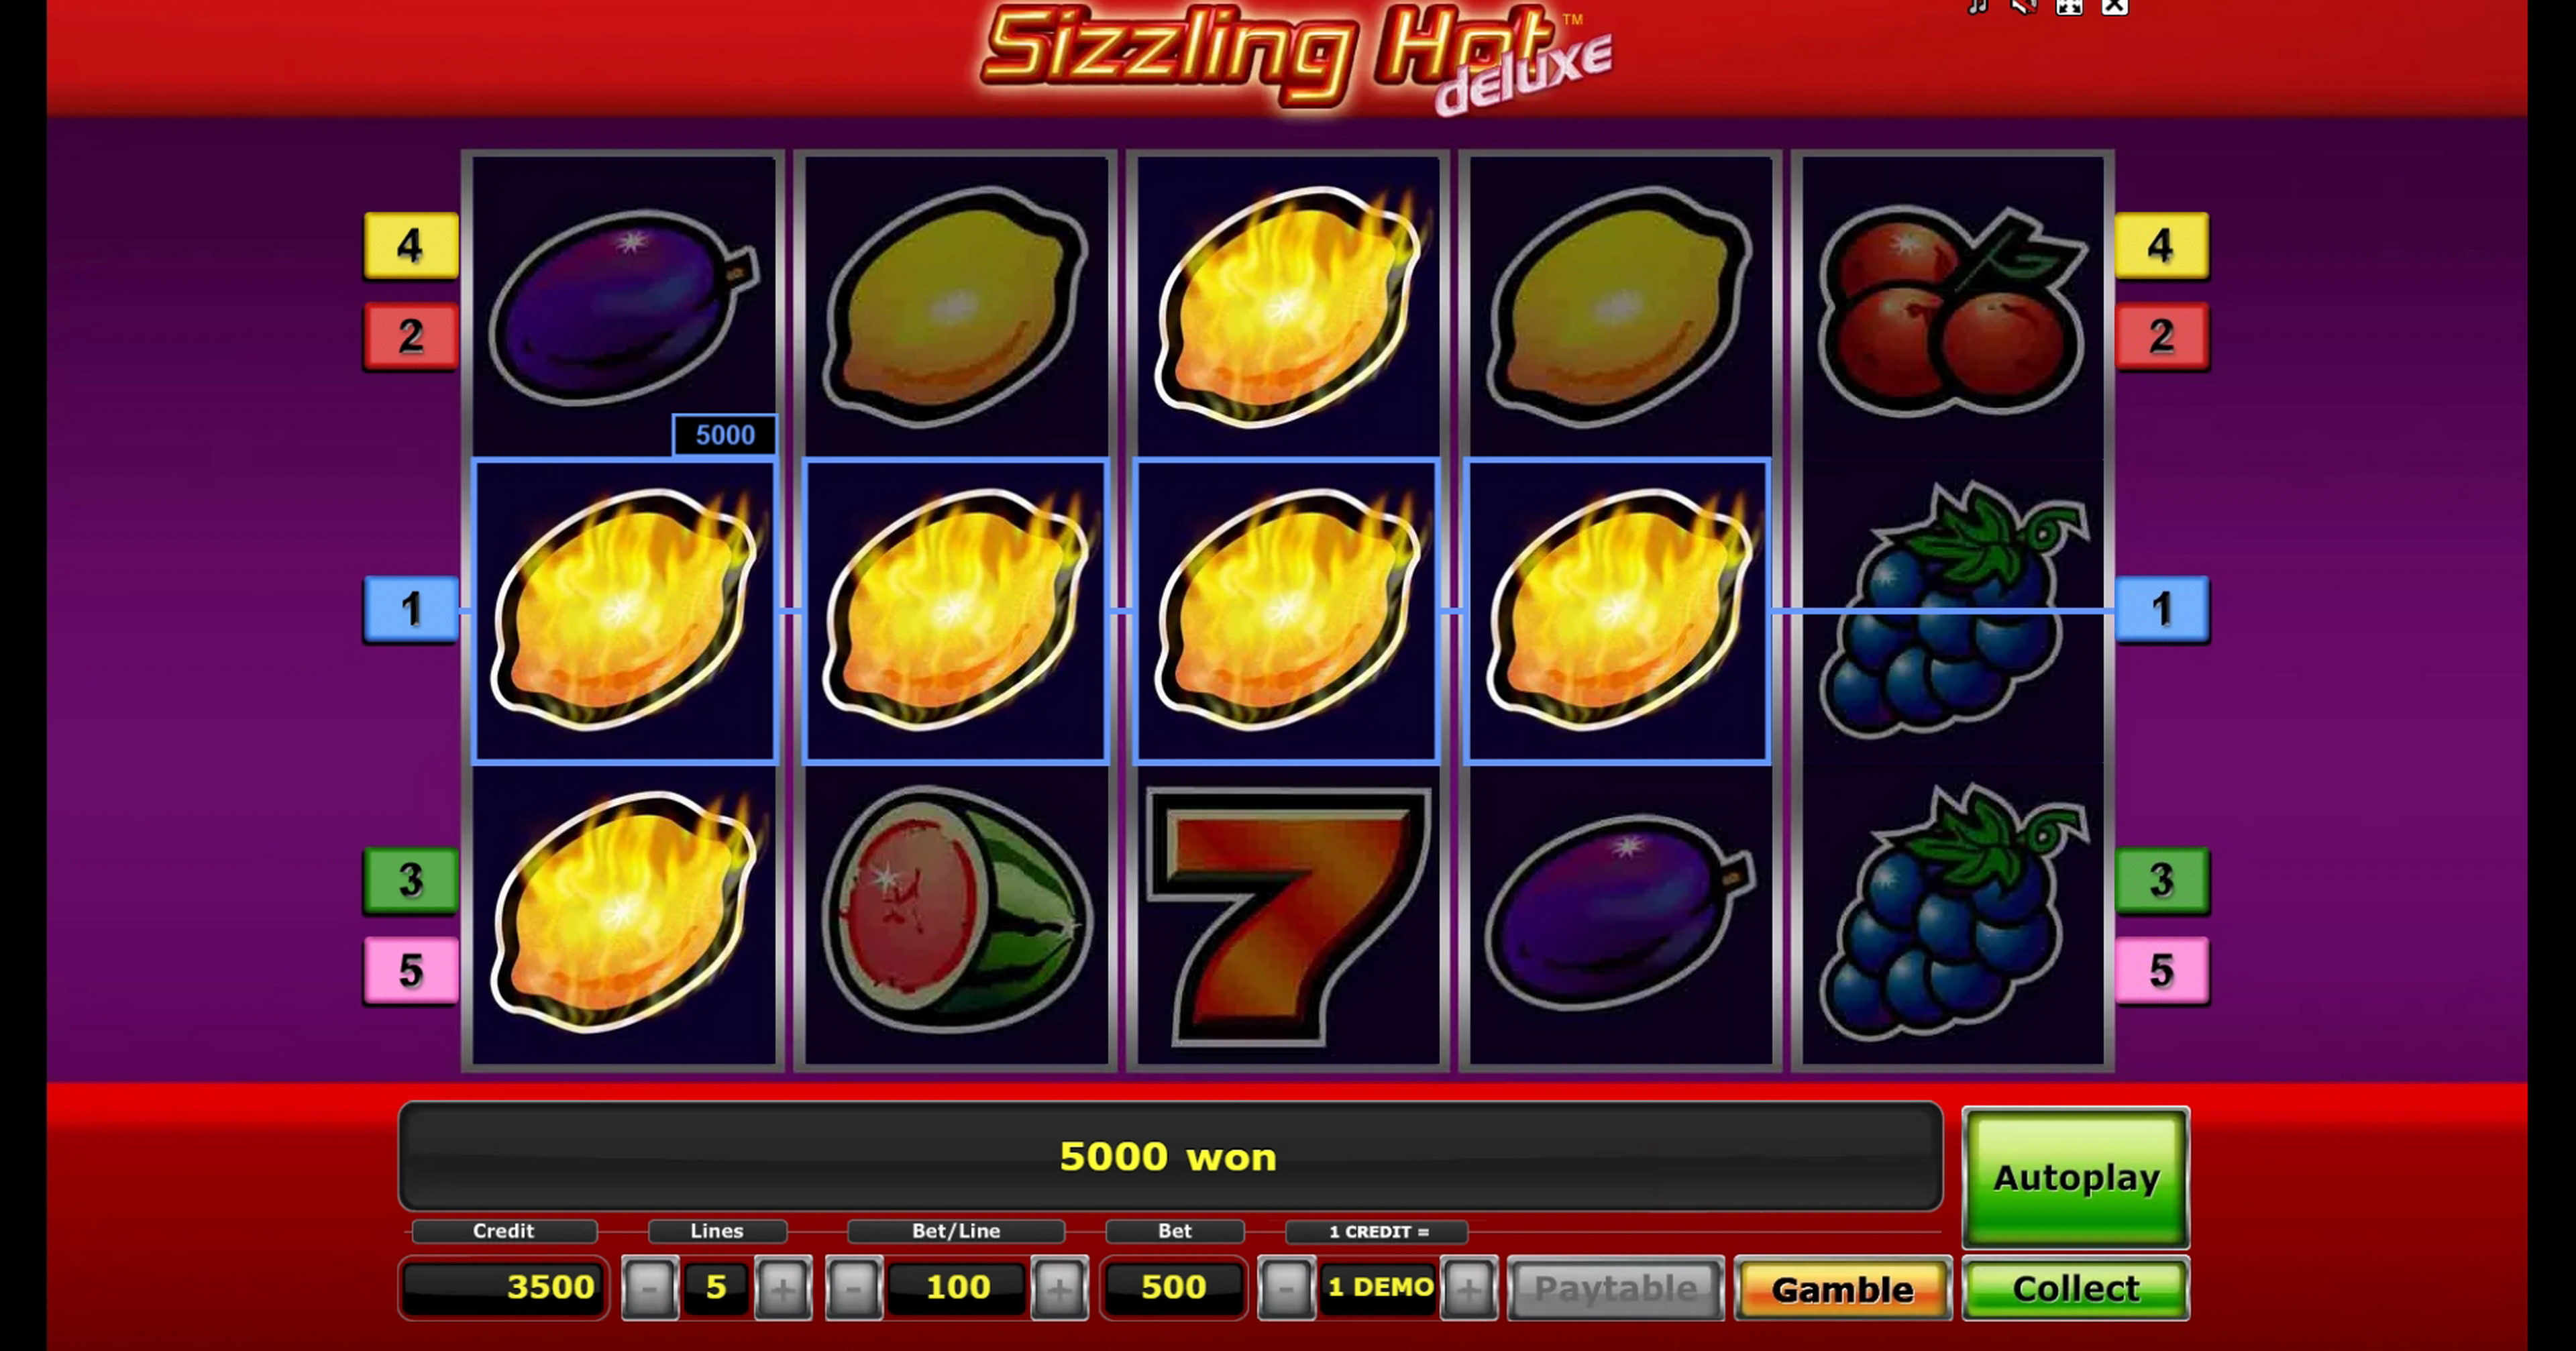 Win Money in Sizzling Hot deluxe Free Slot Game by Greentube